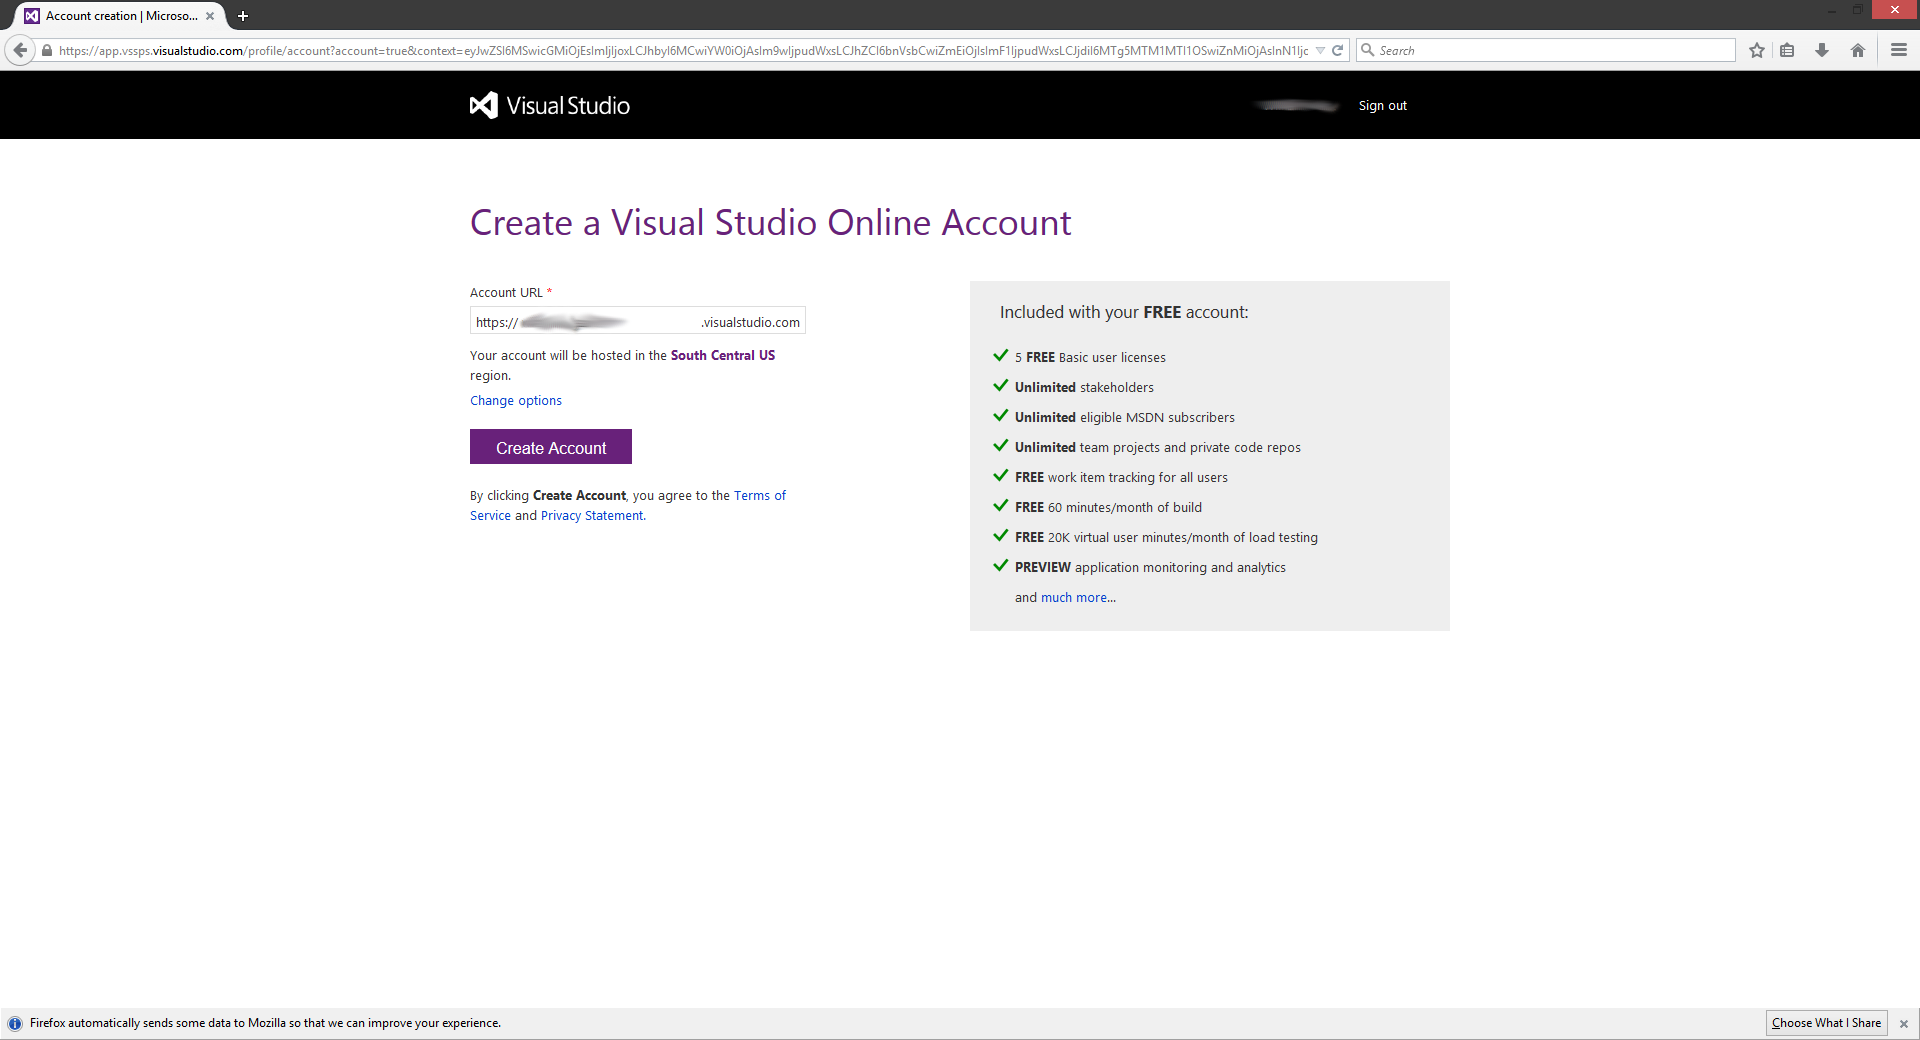 Visual Studio.com account creation